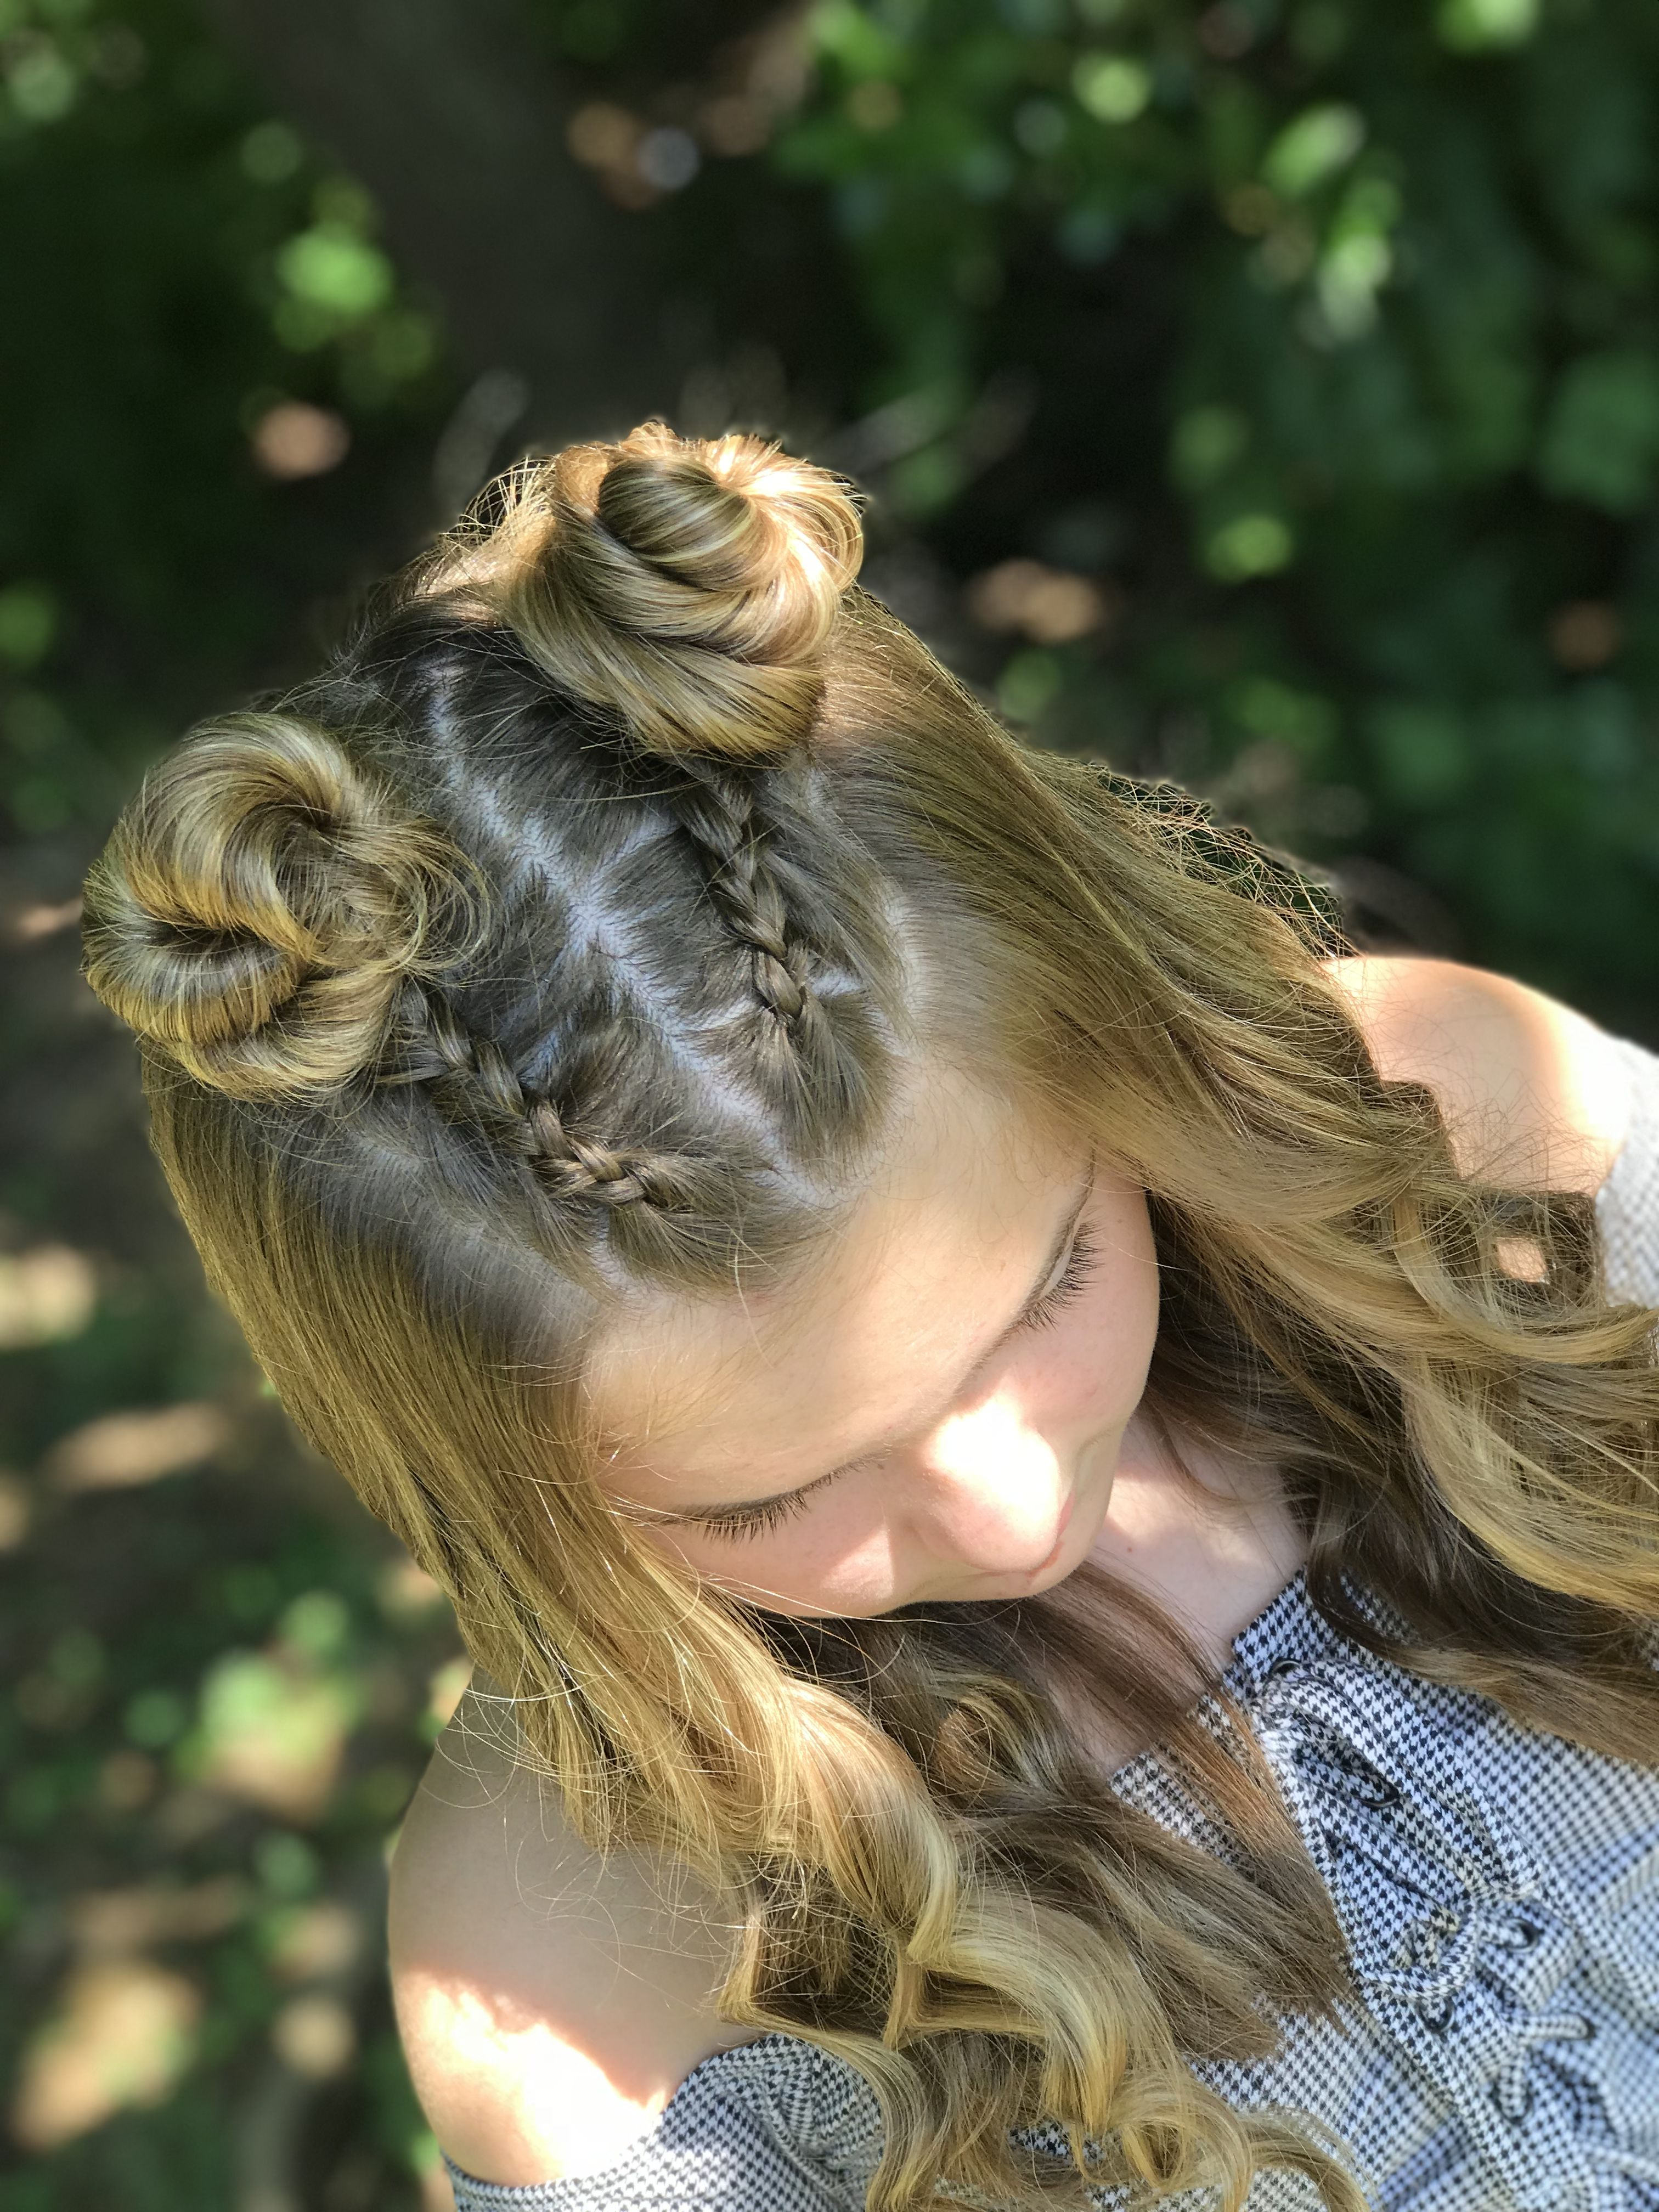 A half up two braided bun curly hairstyle 💛💛💛💛💛 | Two braid hairstyles, French braid hairstyles ...